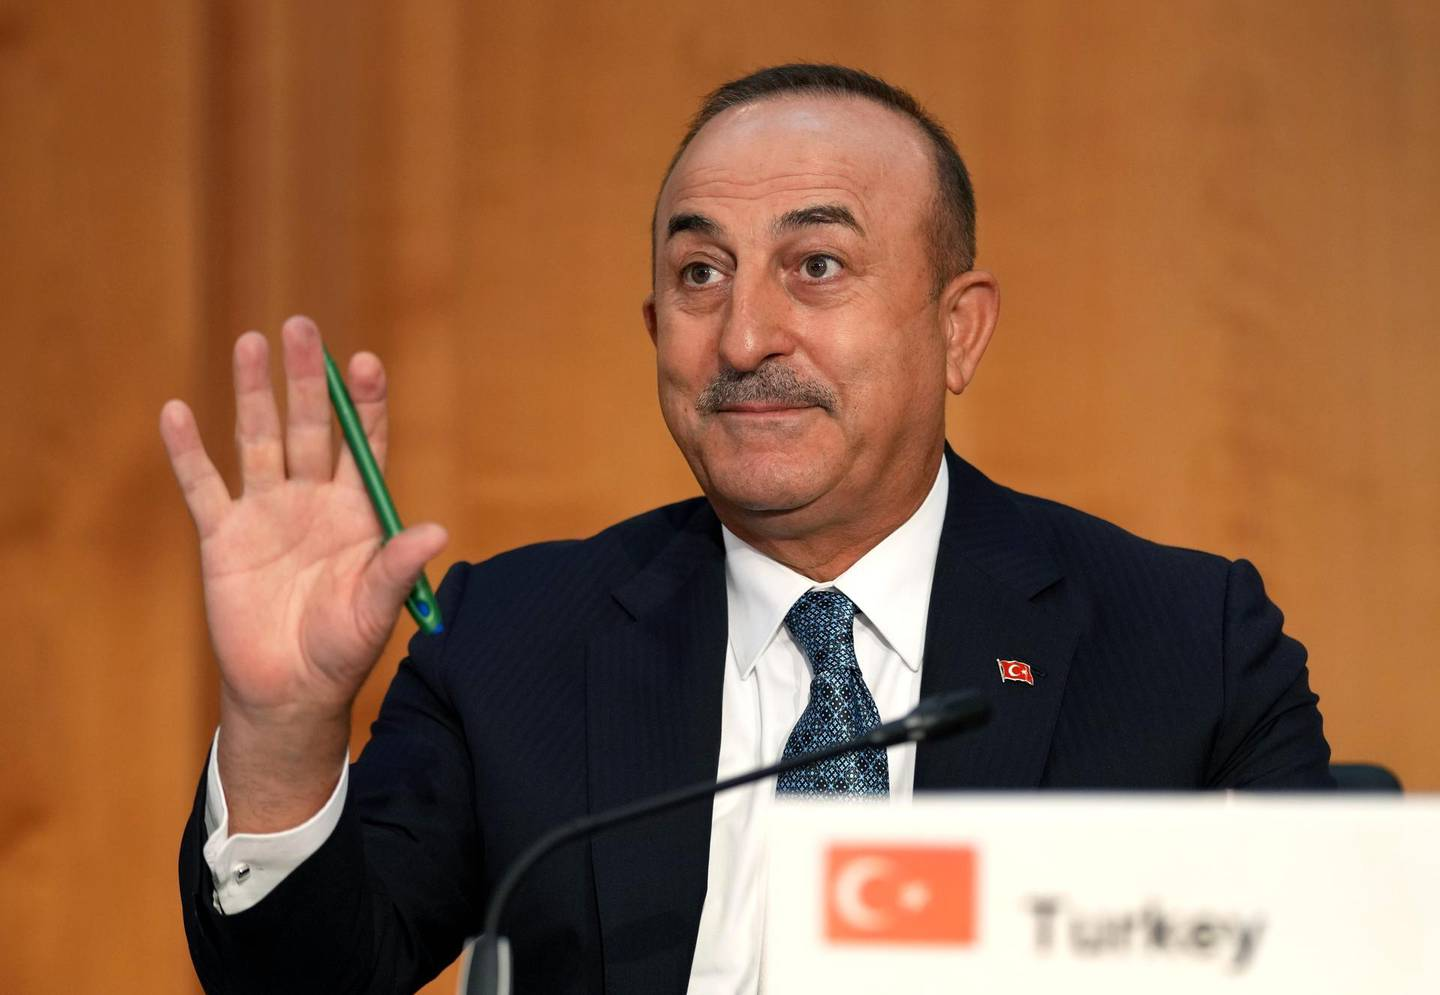 Turkey's Foreign Minister Mevlut Cavusoglu waves during the 'Second Berlin Conference on Libya' at the foreign office in Berlin, Germany, Wednesday, June 23, 2021. (AP Photo/Michael Sohn, pool)